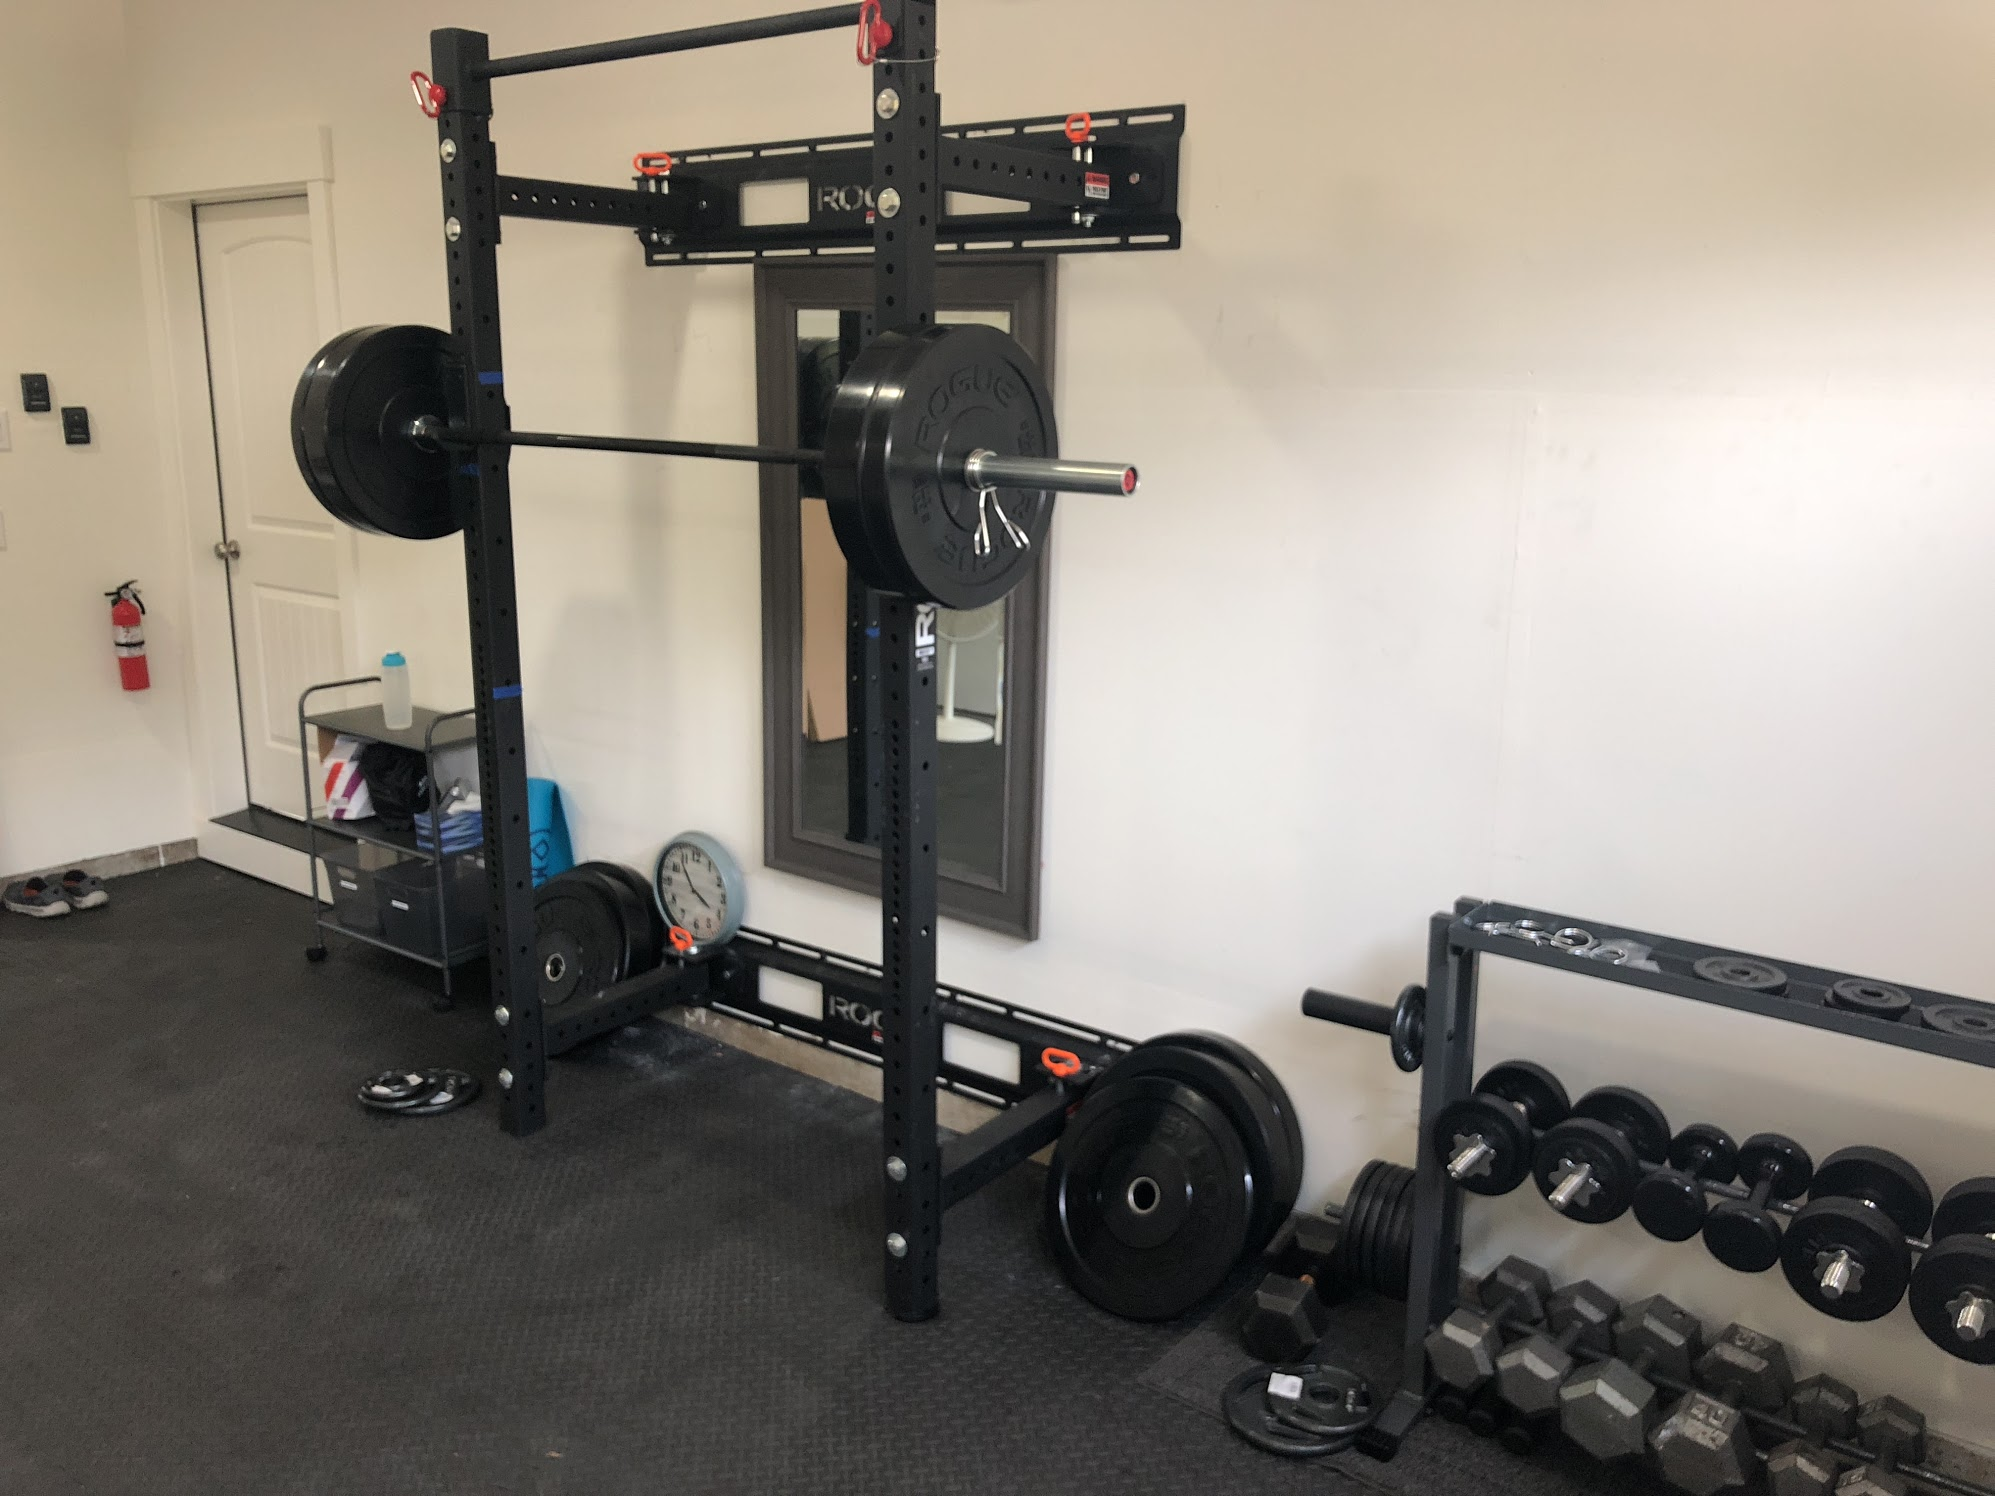 Tips for building a garage gym in a garage